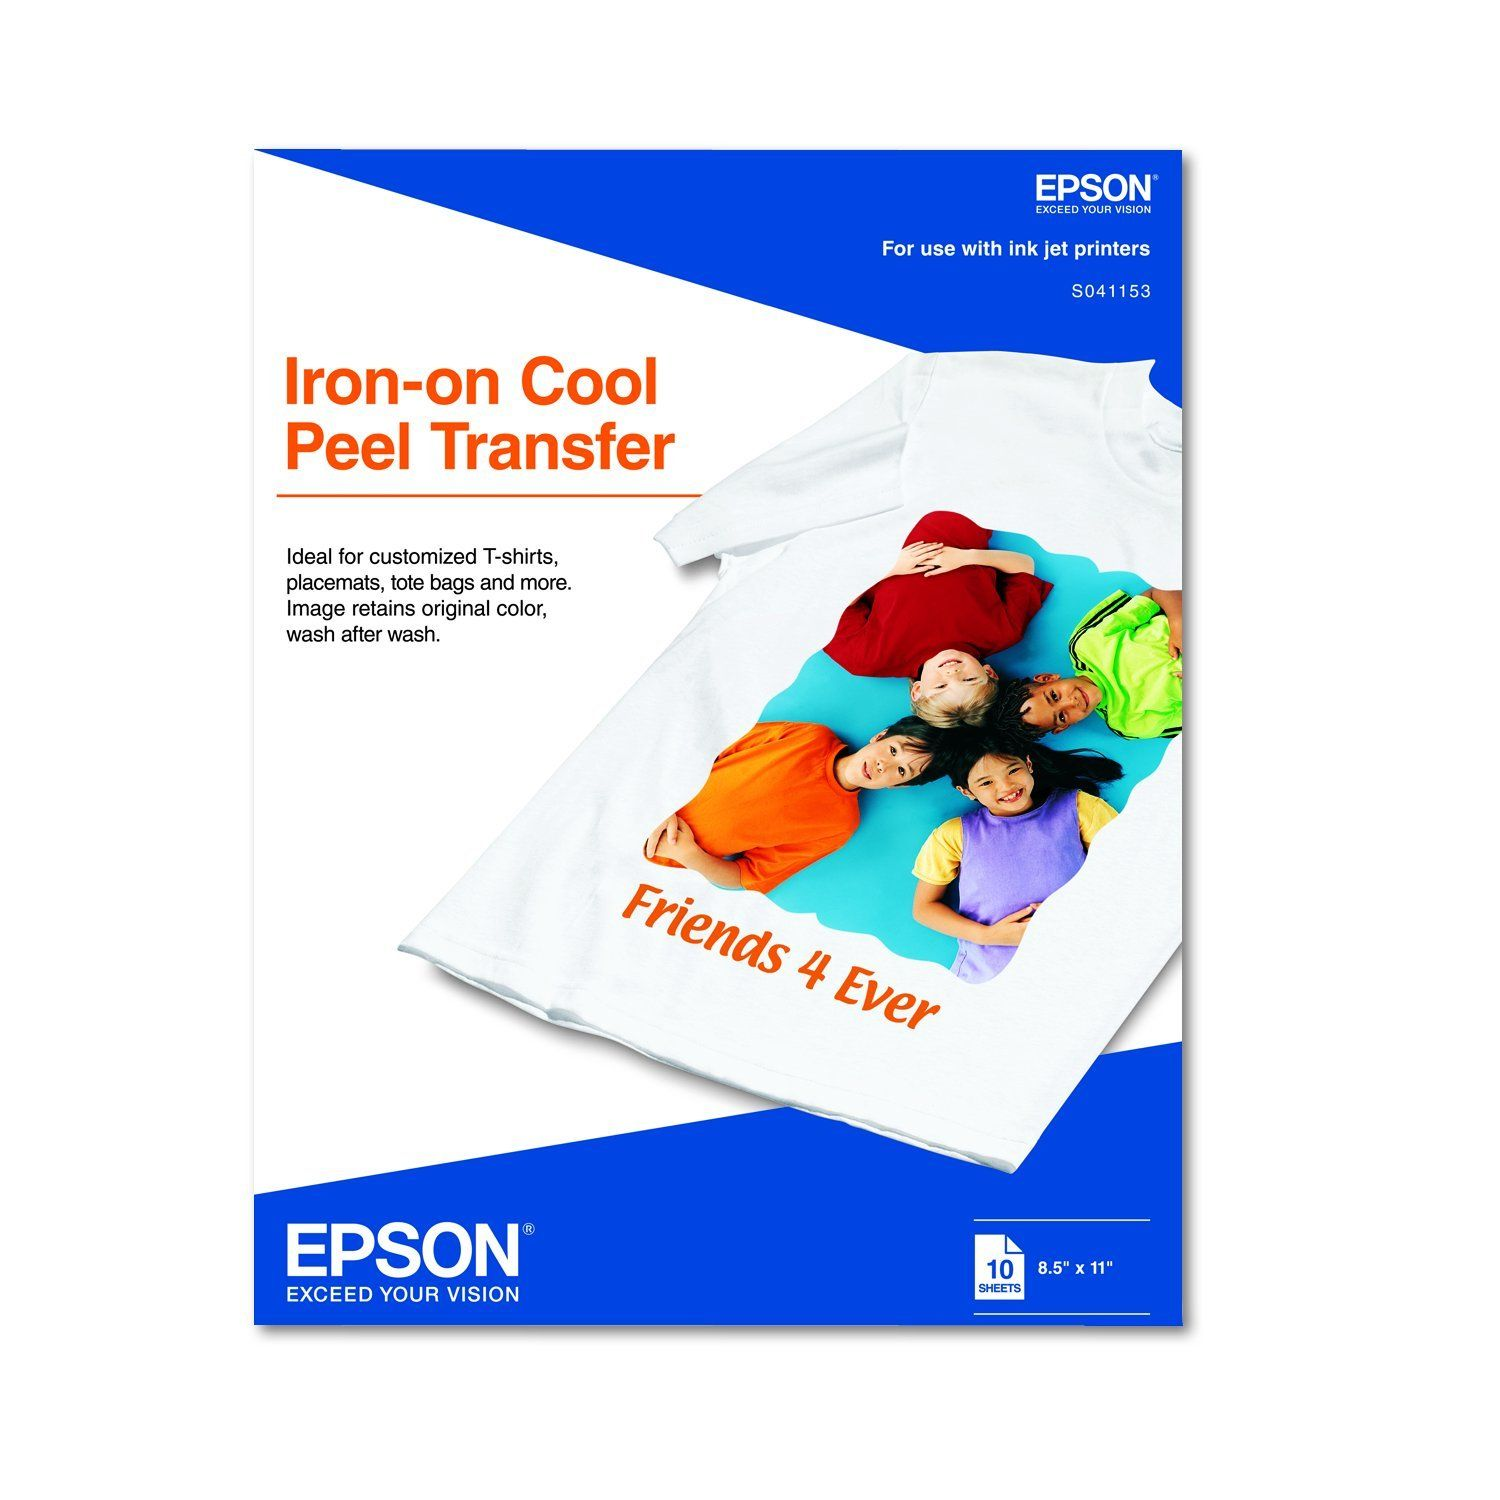 Epson ironon cool peel transfer 85x11 inches 10 sheets